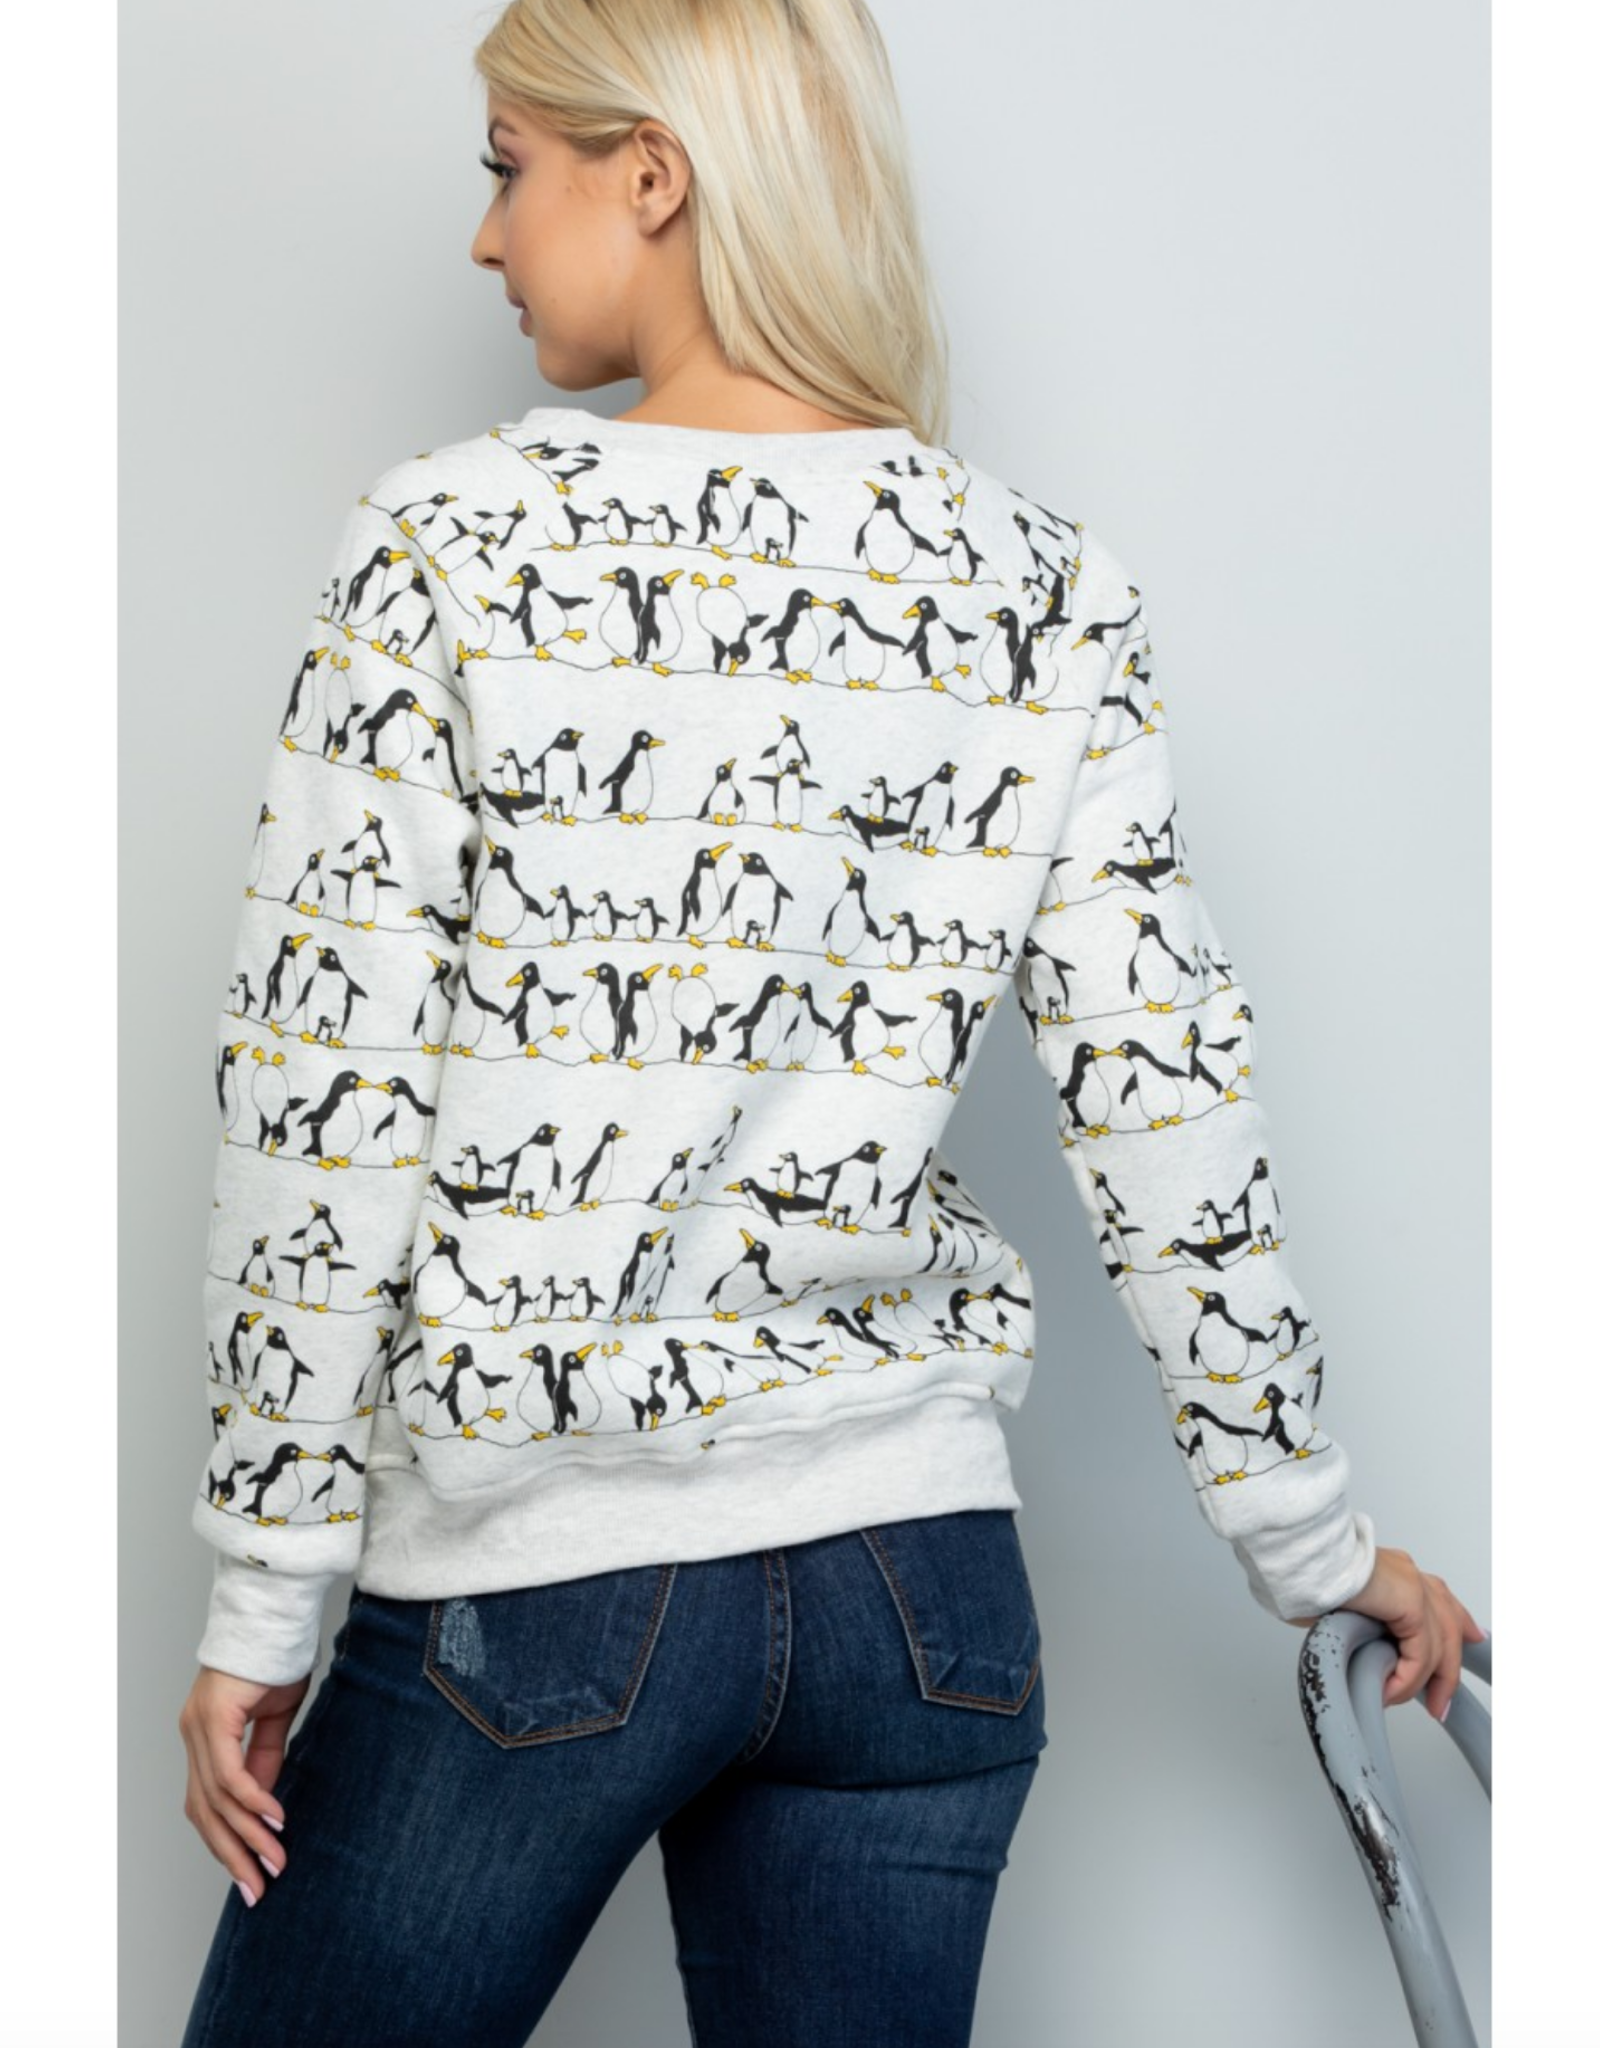 Penguins on a Wire Sweatshirt